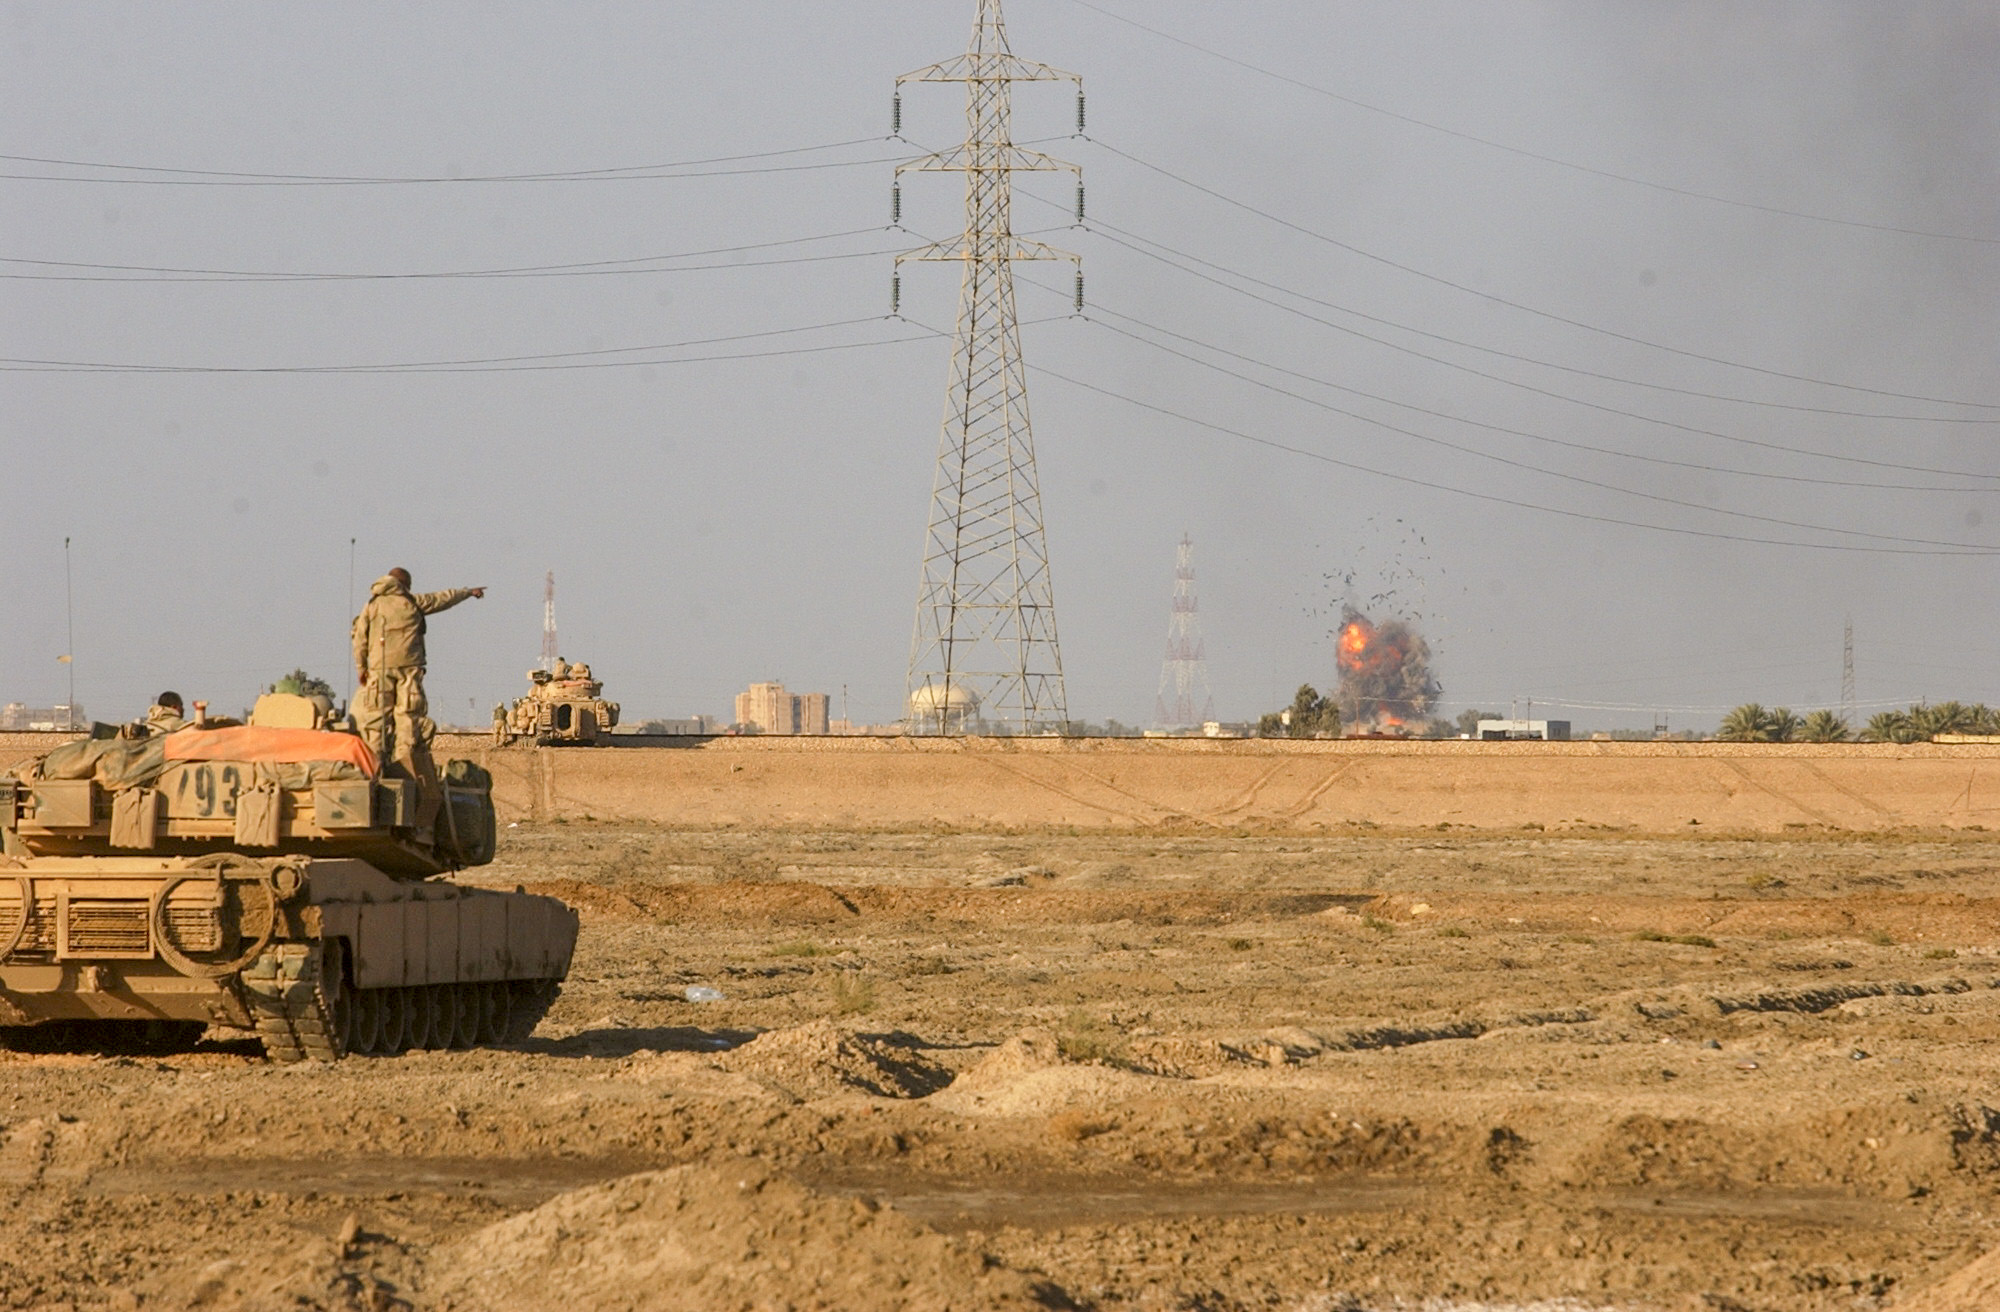 Soldiers from the U.S. Army's 7th Cavalry Regiment, watch on as a bomb from an F-16 blows up what was a headquarters for the Iraqi's that were fighting them. The troops have been operating around As Samawah for almost two days now and have been facing some strong resistance from the fighters inside. (Warren Zinn/Army Times)